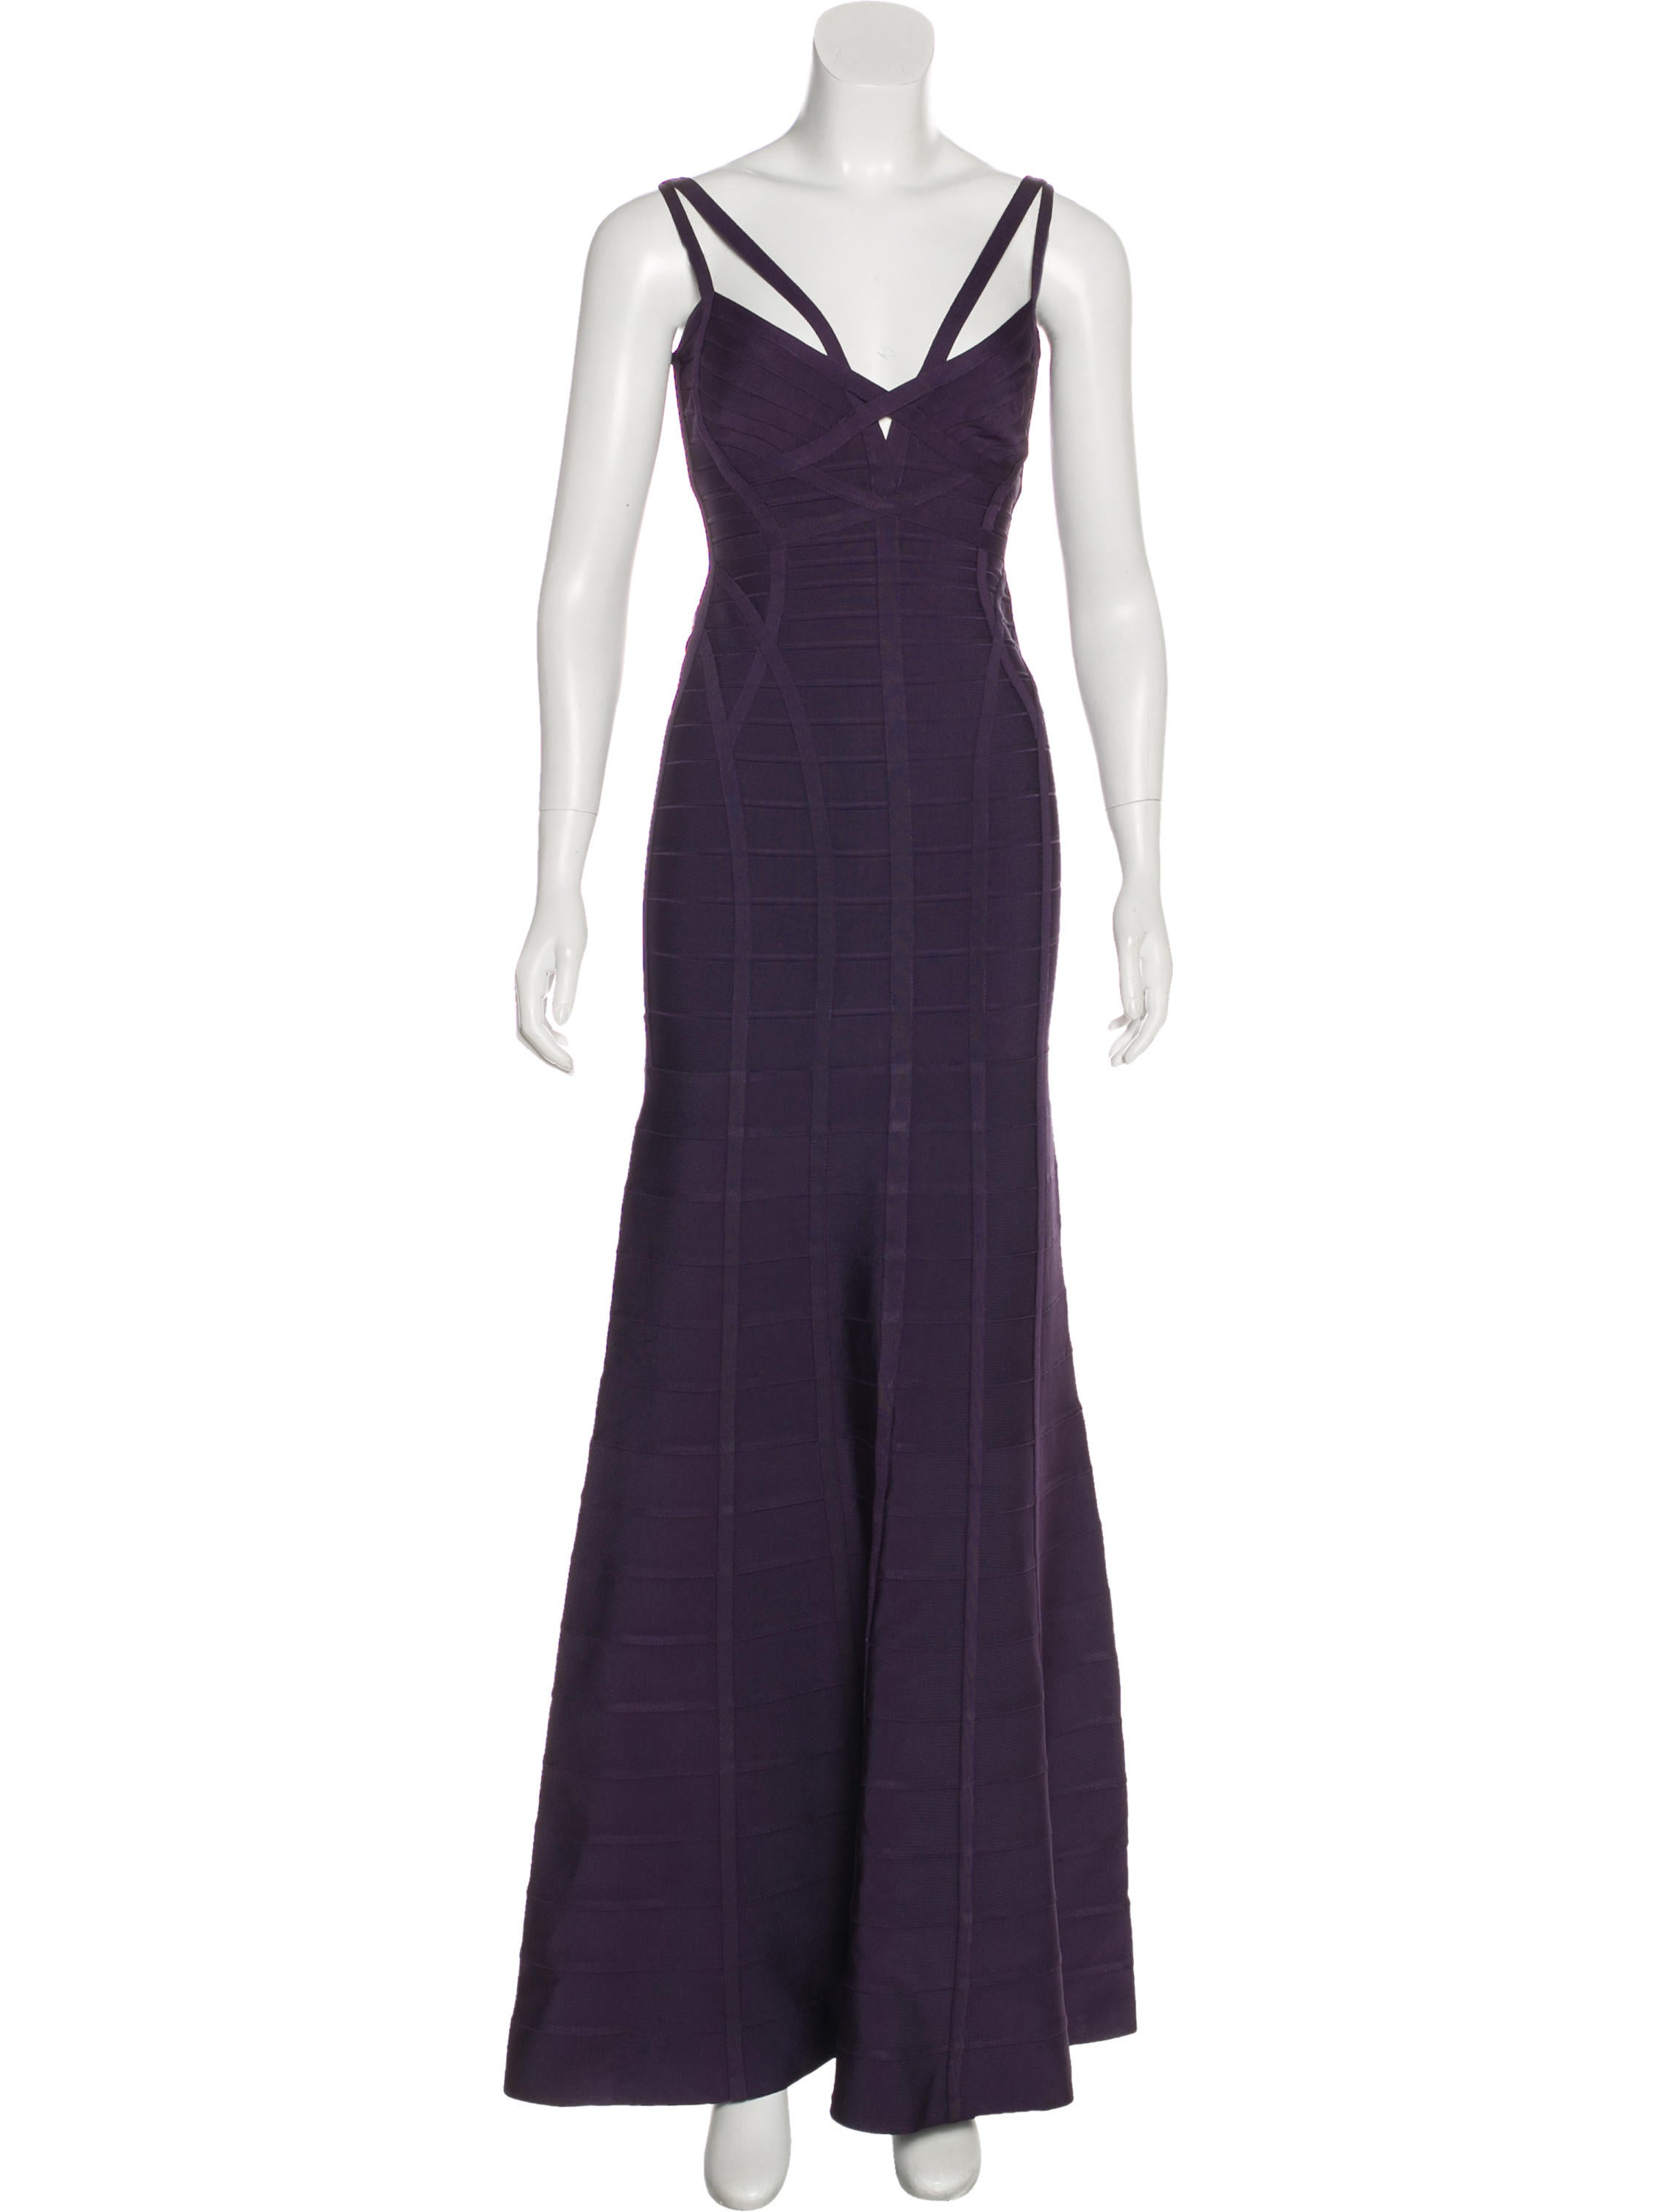 Herve Leger Adalia Bandage Gown - Clothing - HEV35260 | The RealReal